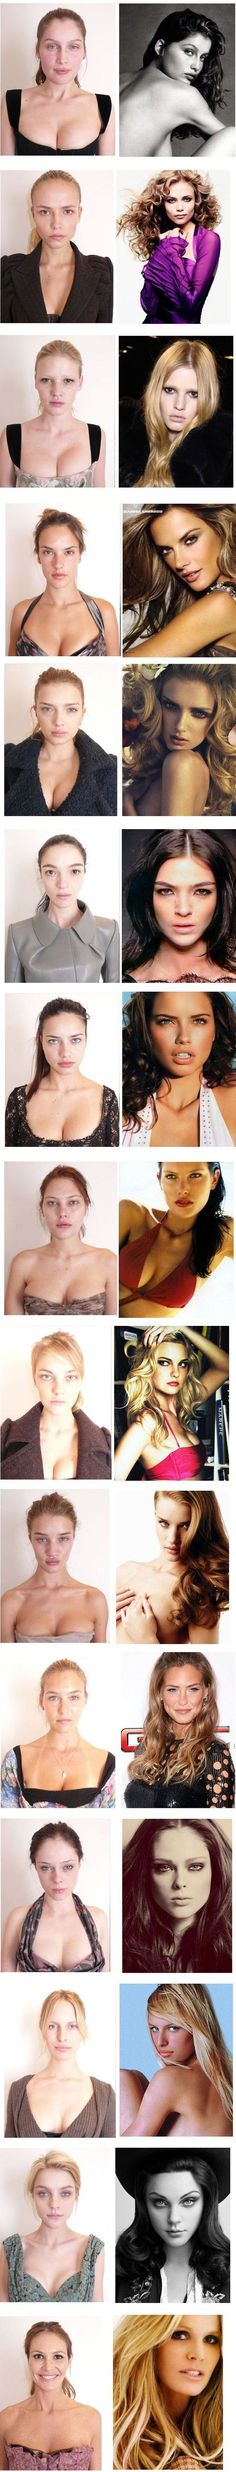 Victoria secret Models Before and After Make-up So girls do not put yourself down because you don't feel as pretty as them. It can be wiped off